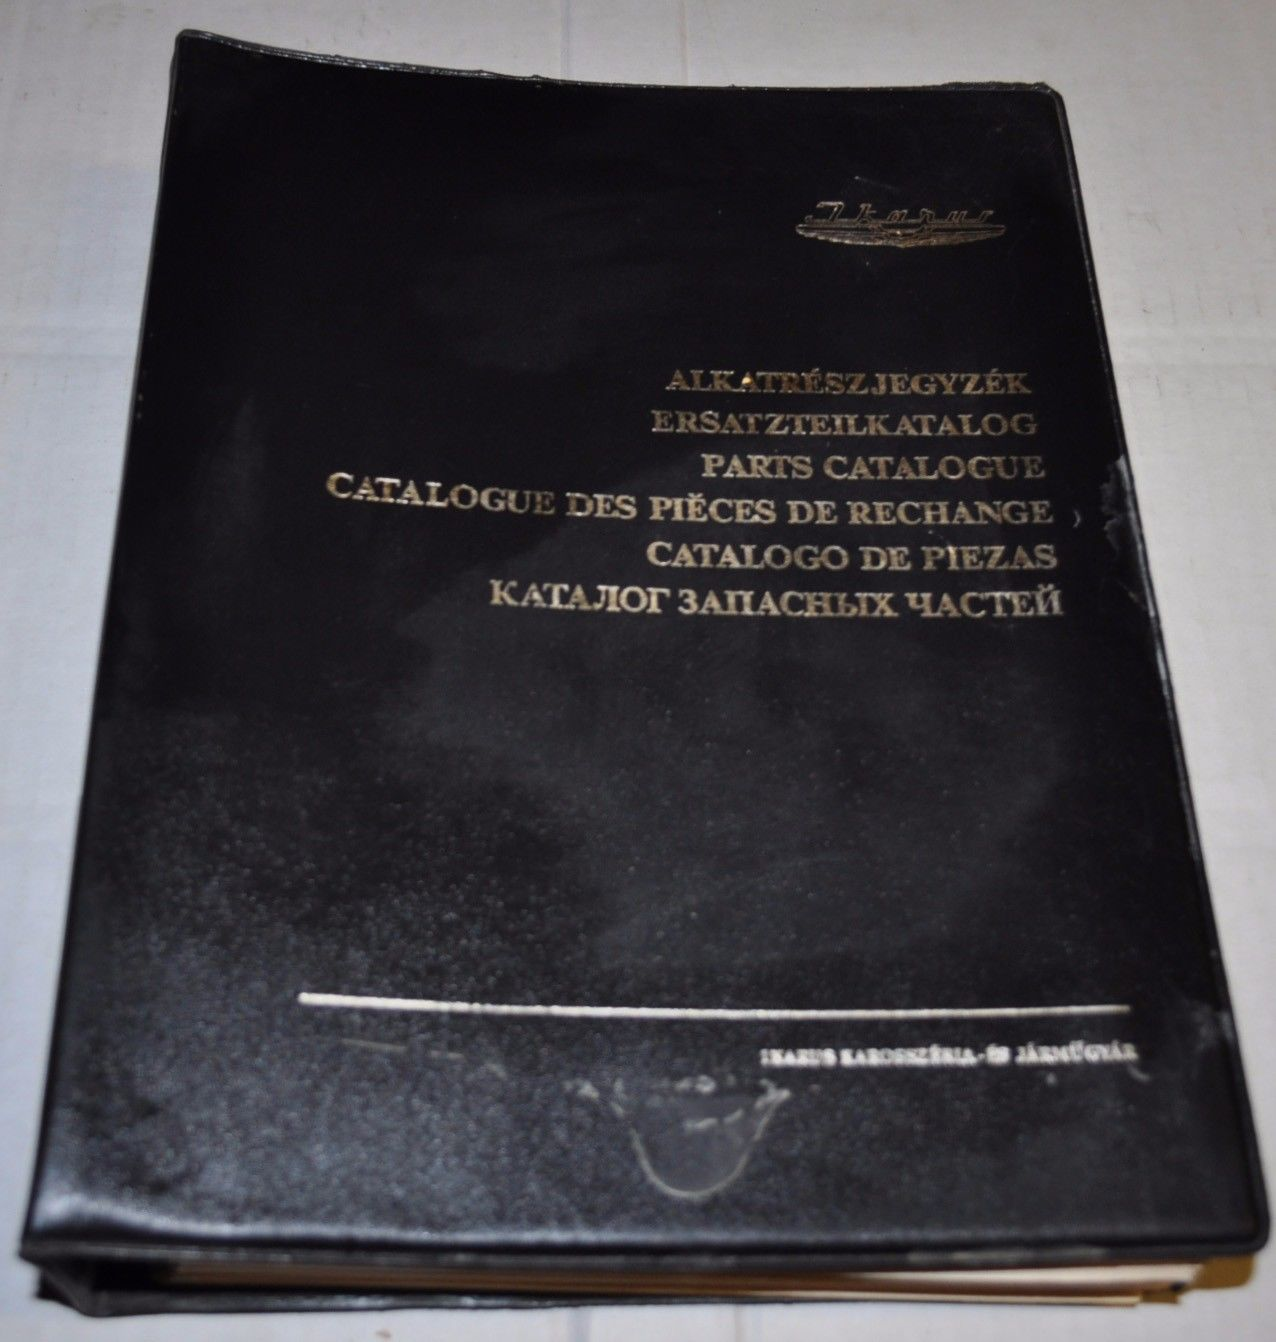 Ikarus Katalog Ikarus 260 50 52 280 63 Bus Parts Catalog 7languages Mogurt No Brochure Prospekt